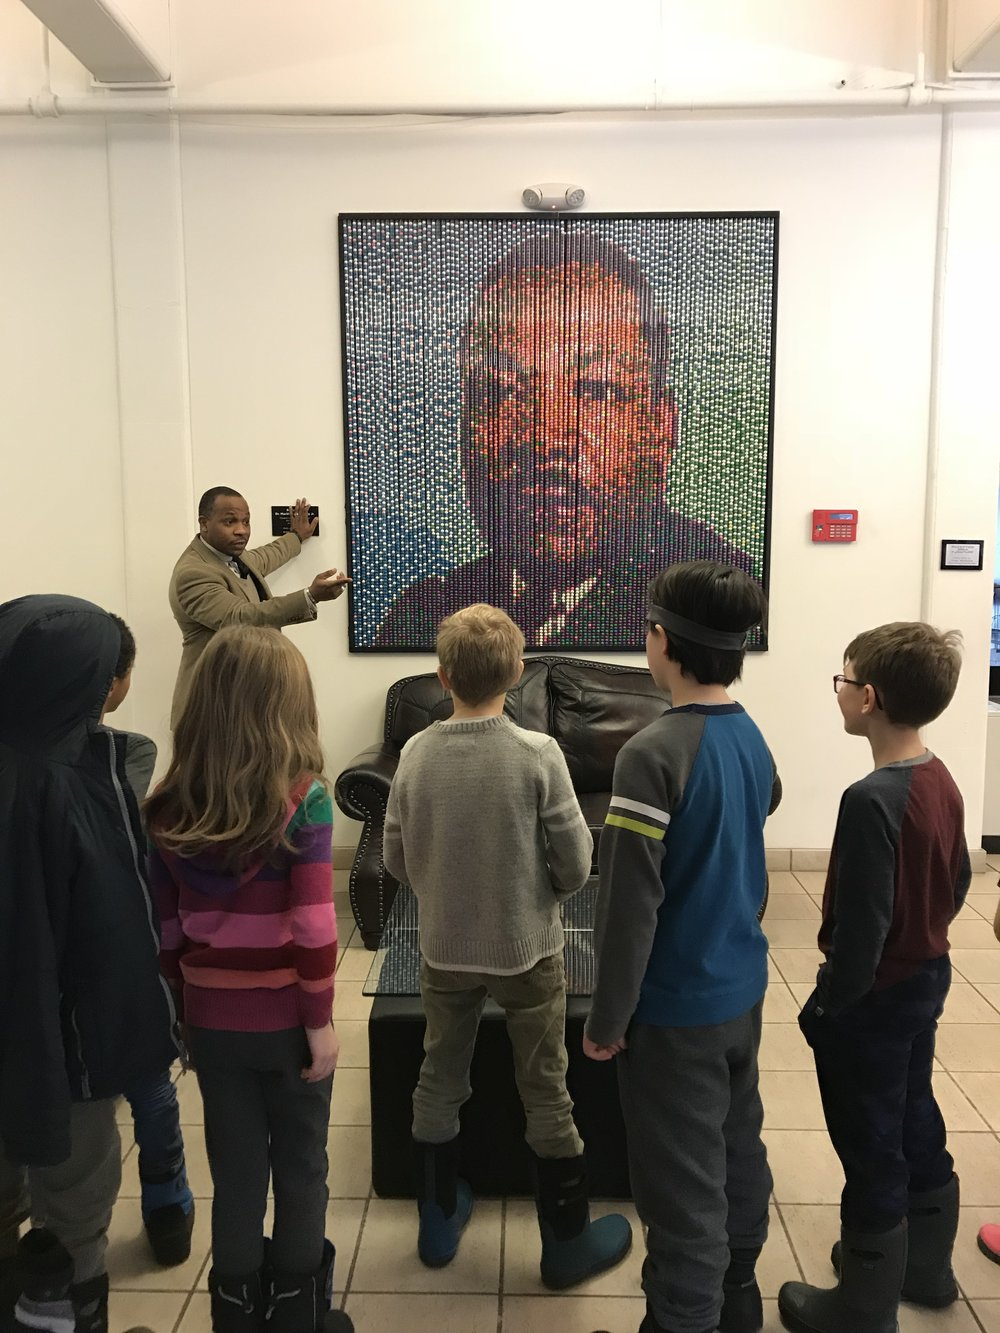 Jevon Collins, Performing Arts Director, directed back-to-back tours for our groups (Chickadees and Cardinals 1, then Cardinals 2 and Hawks). Not surprisingly, this portrait of Dr. King, made of gum balls by community participants, captivated the kids.